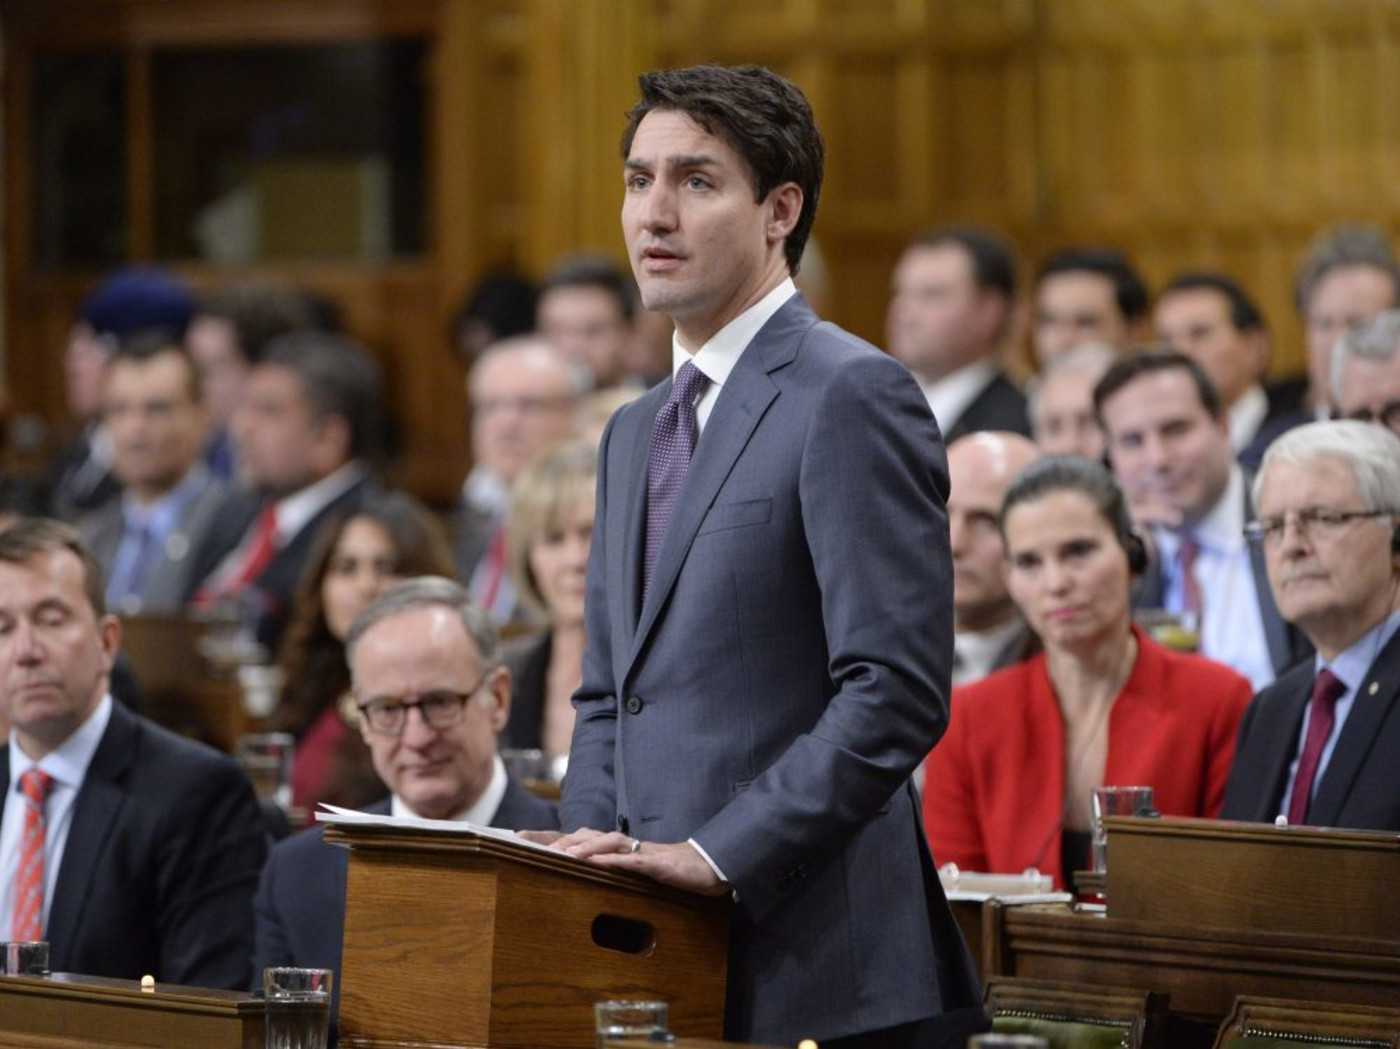 Justin Trudeau Delivers Historic Apology To Canada's LGBTQ Community